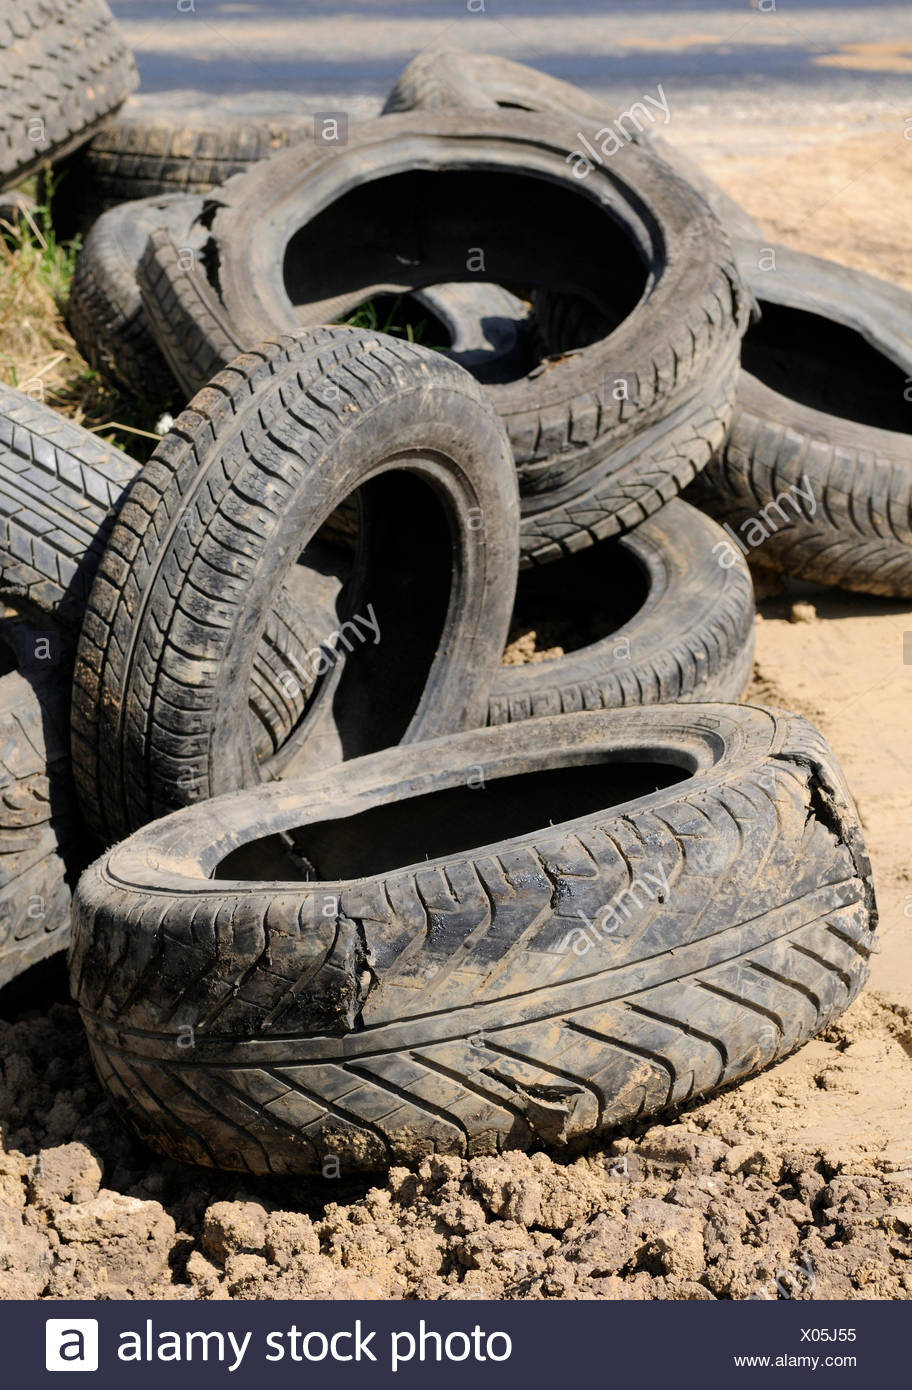 environment enviroment disposal mull refuse car tire tyre tire tyres old Stock Photo